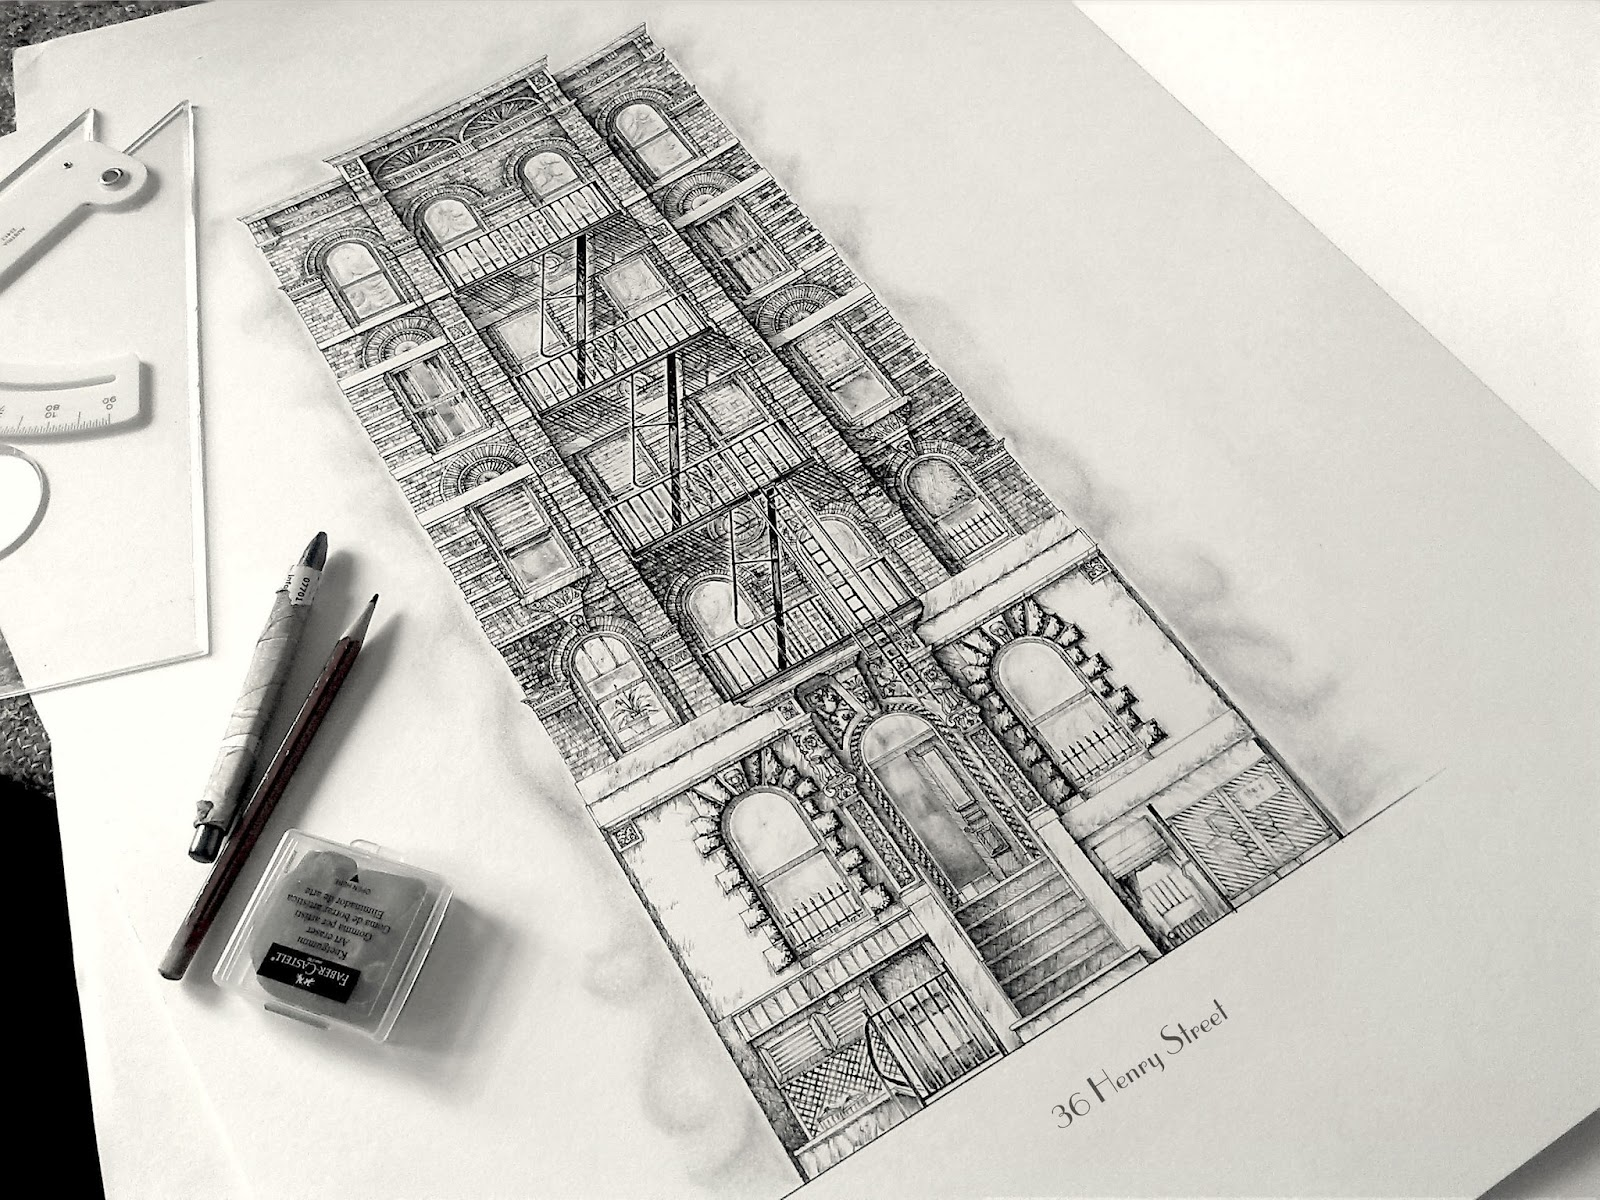 08-Townhouse-New-York-City-Jamie-Cameron-Intricate-Architectural-Drawings-and-Illustrations-www-designstack-co